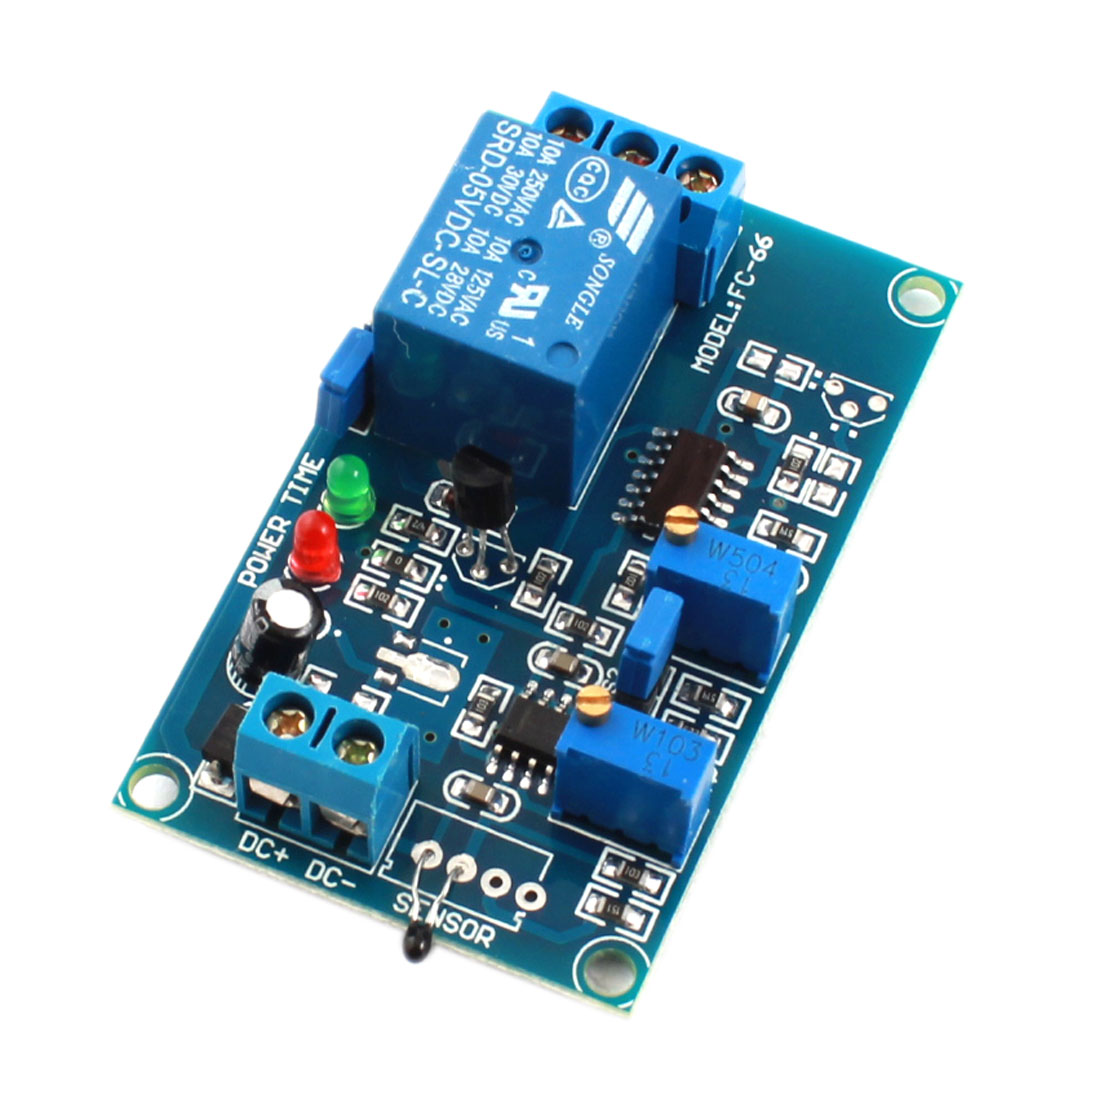 DC5V 2-LED Lamp 1 Way High Temperature Trigger Thermosensitive Time Delay PCB Board Relay Module Blue